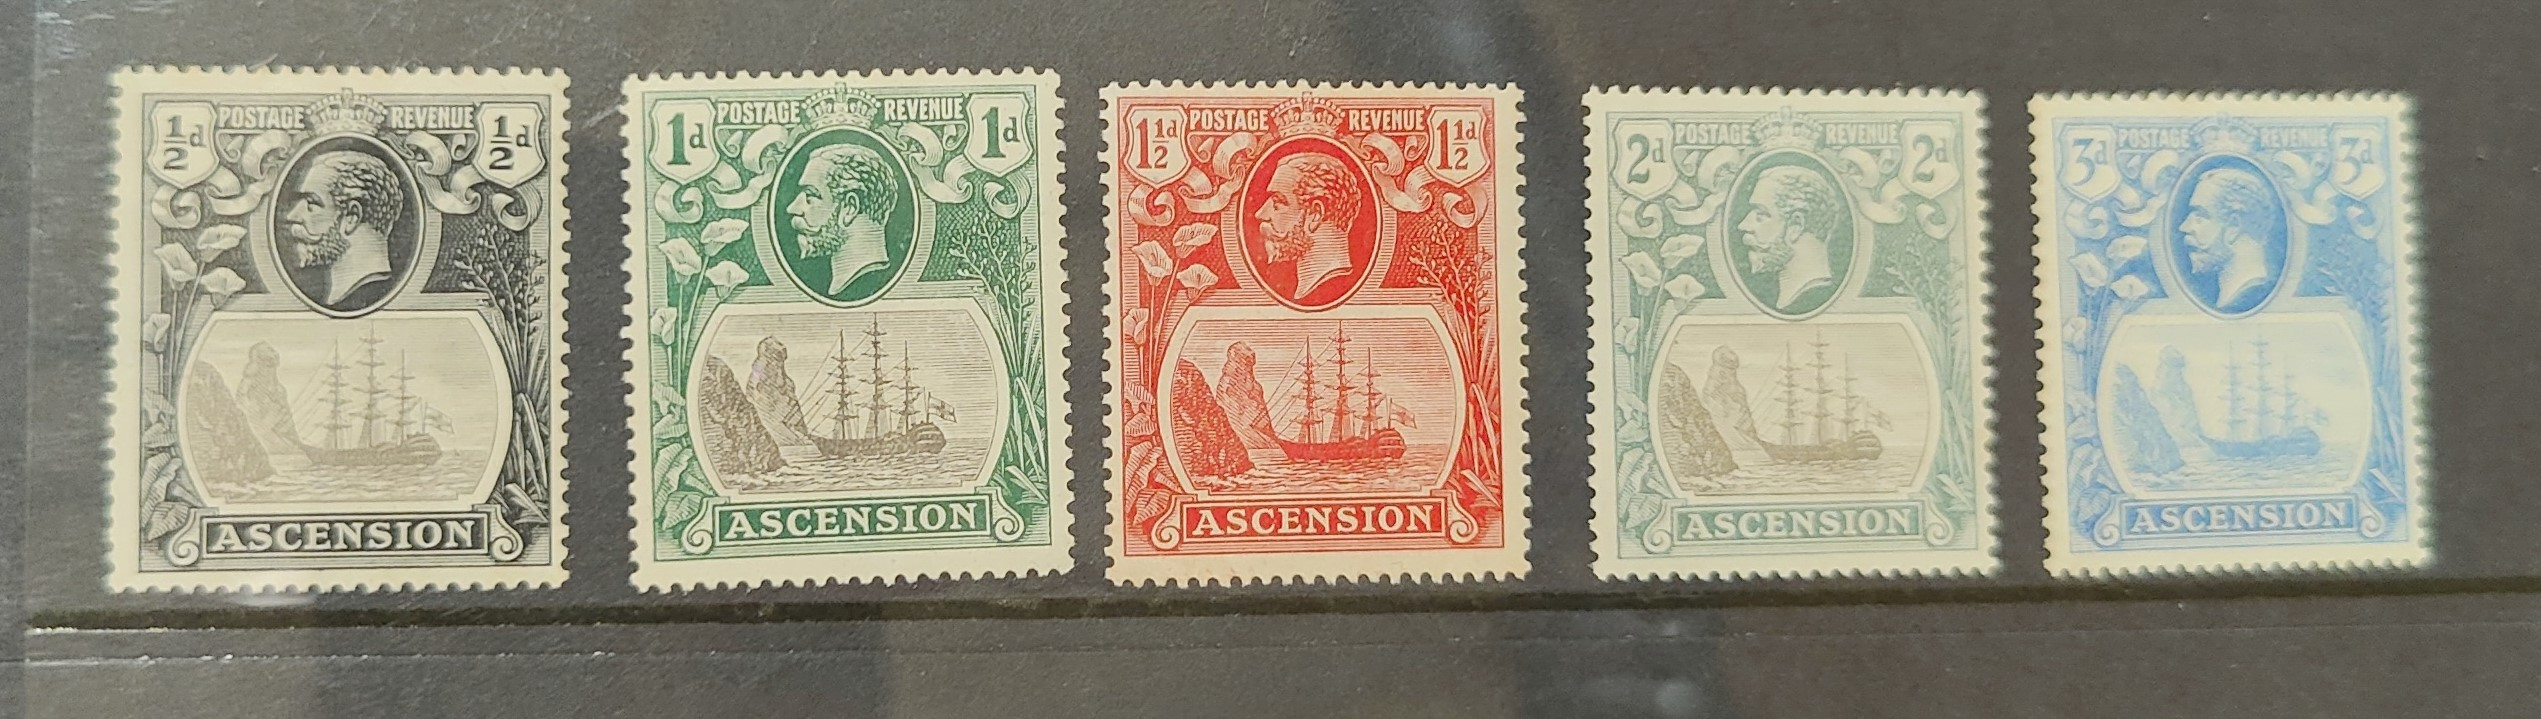 A British empire collection in stock album to include Ascension, Bahamas GV to 10's, Barbados, - Image 2 of 4